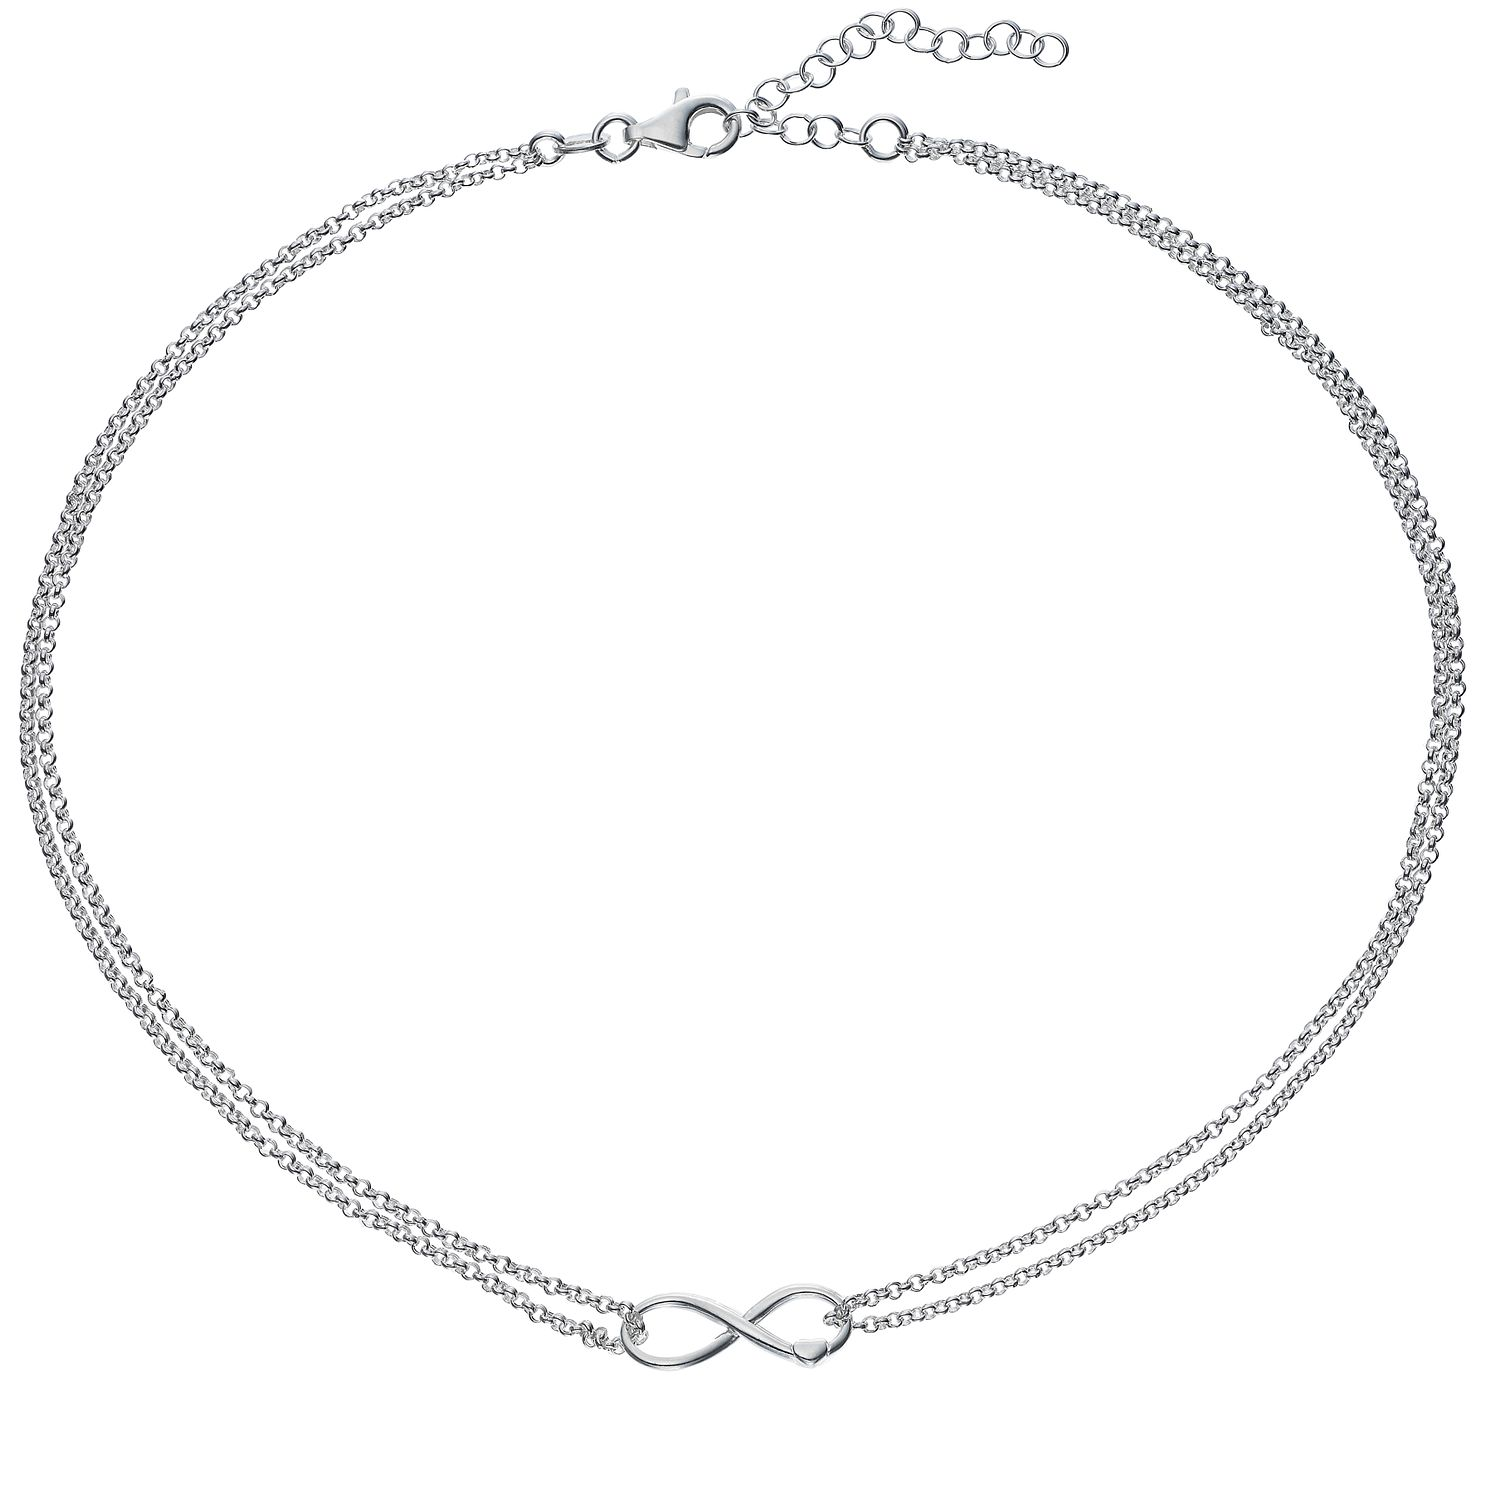 Silver Infinity Heart Double Chain Necklace - Product number 5694256